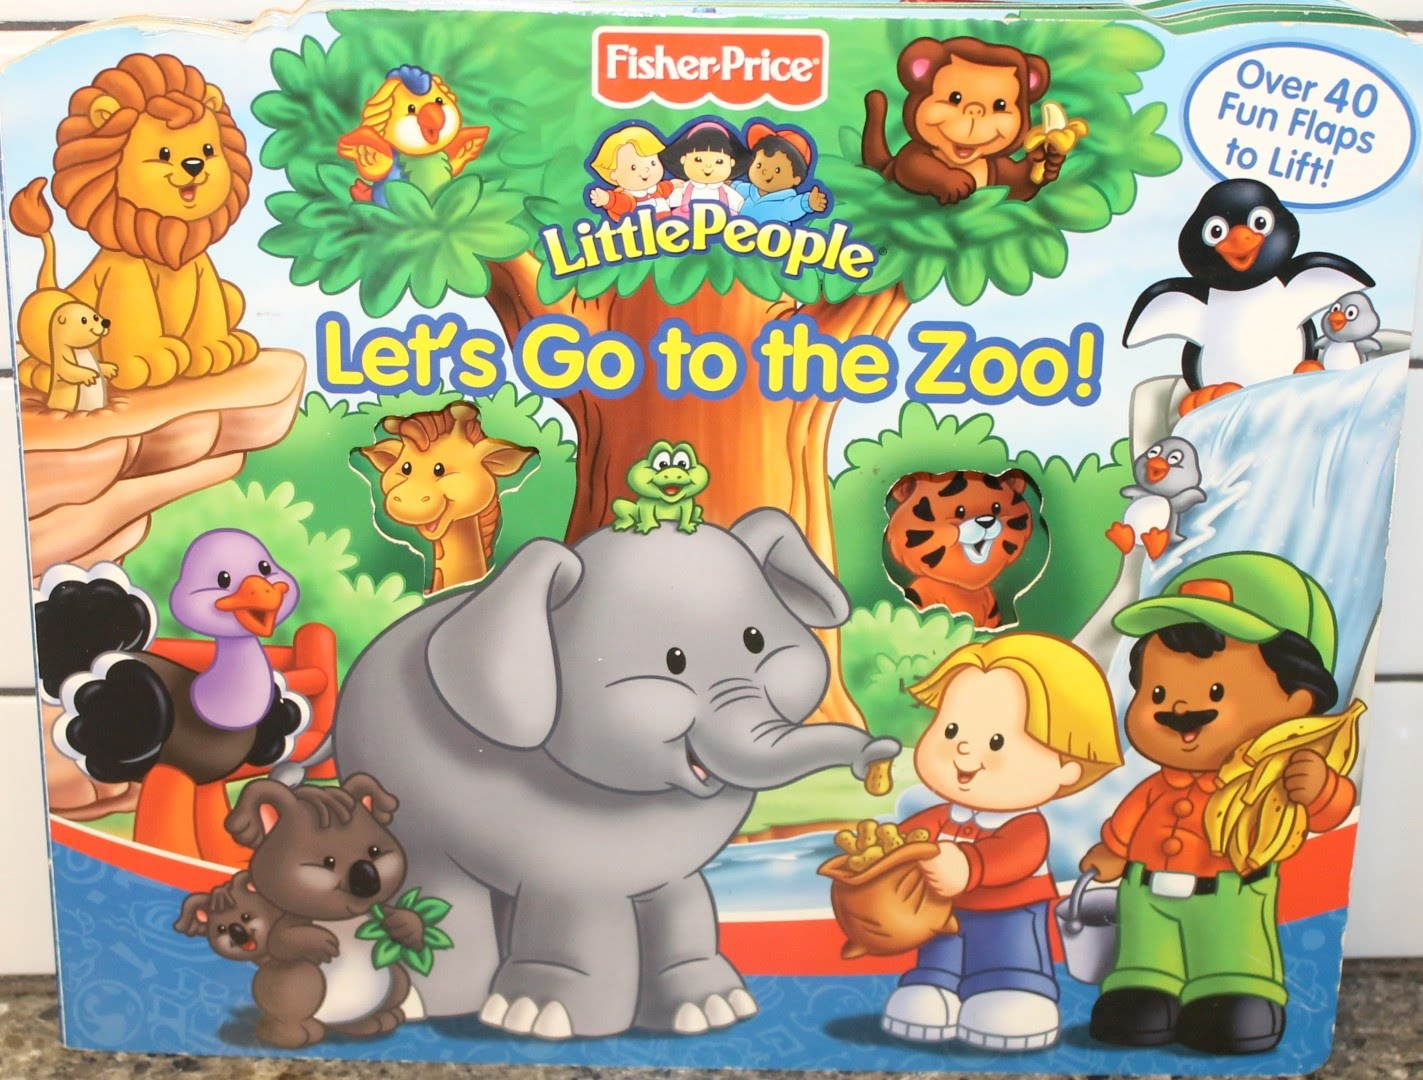 Zoo clipart let's go To Zoo!